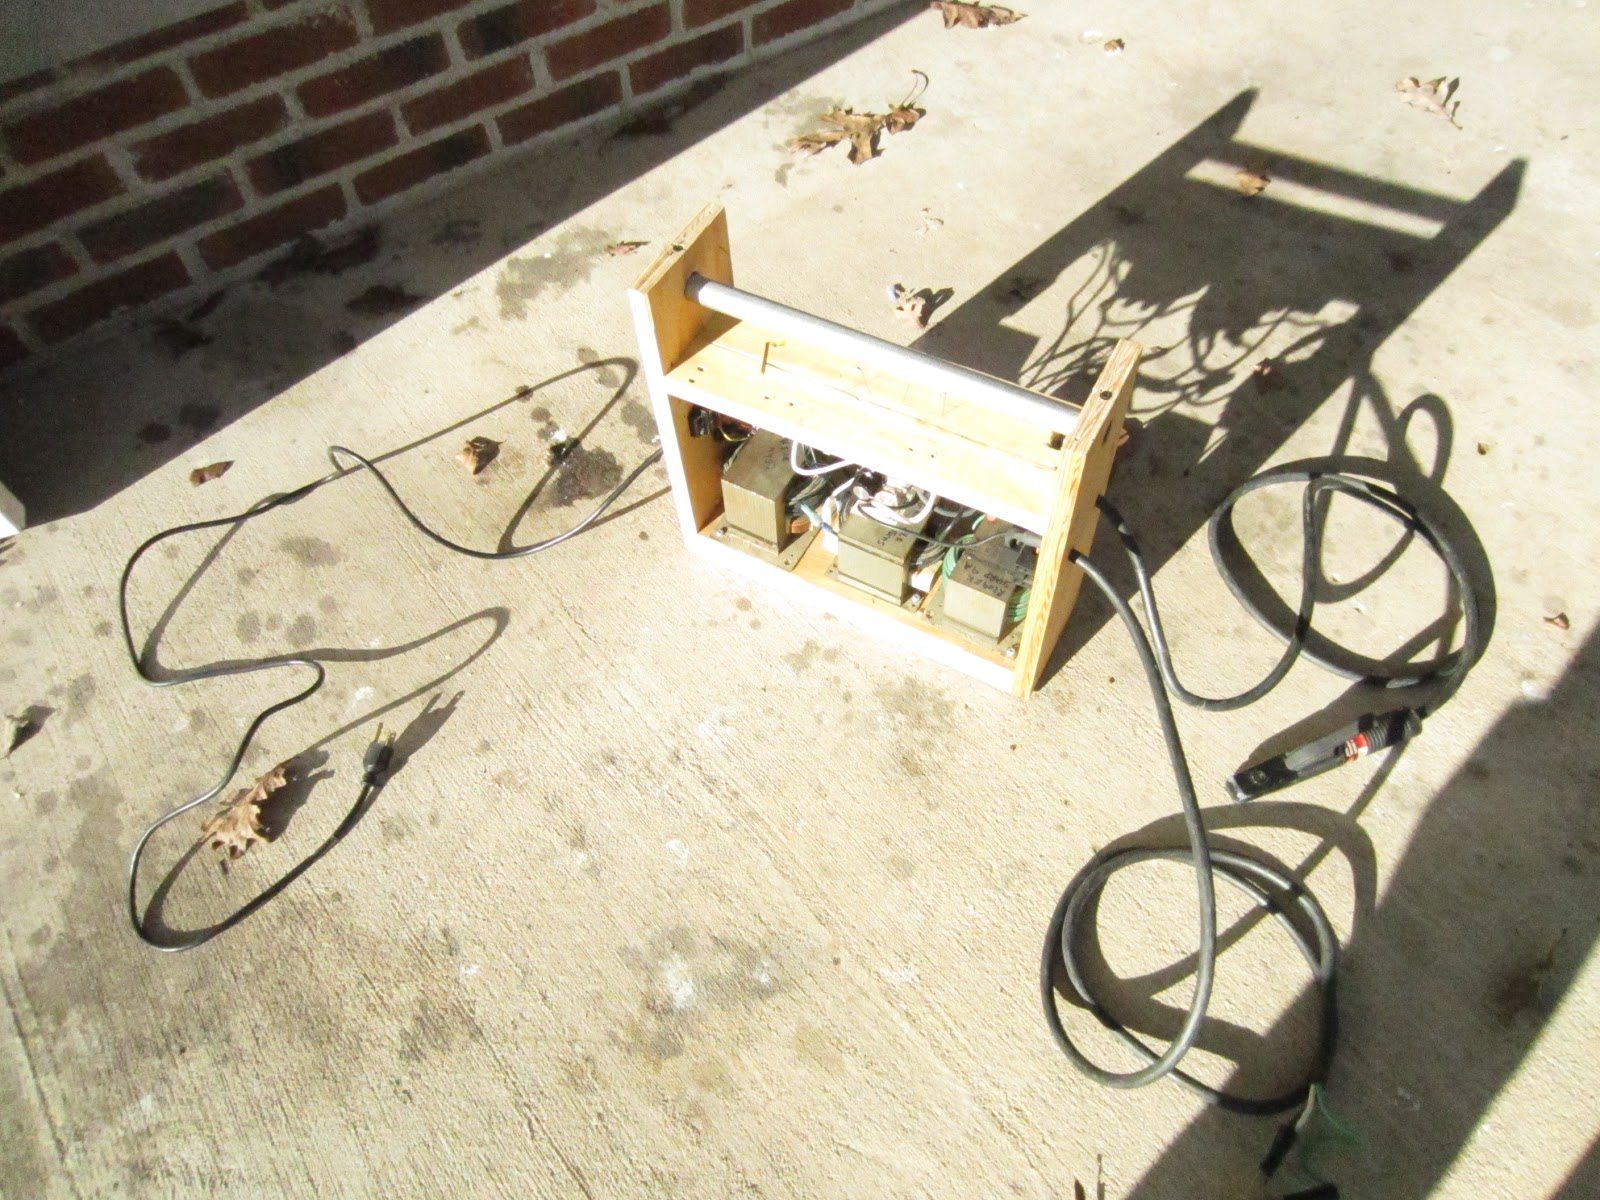 DIY 110 V Portable Arc Welder - with DC! | From mind to machine